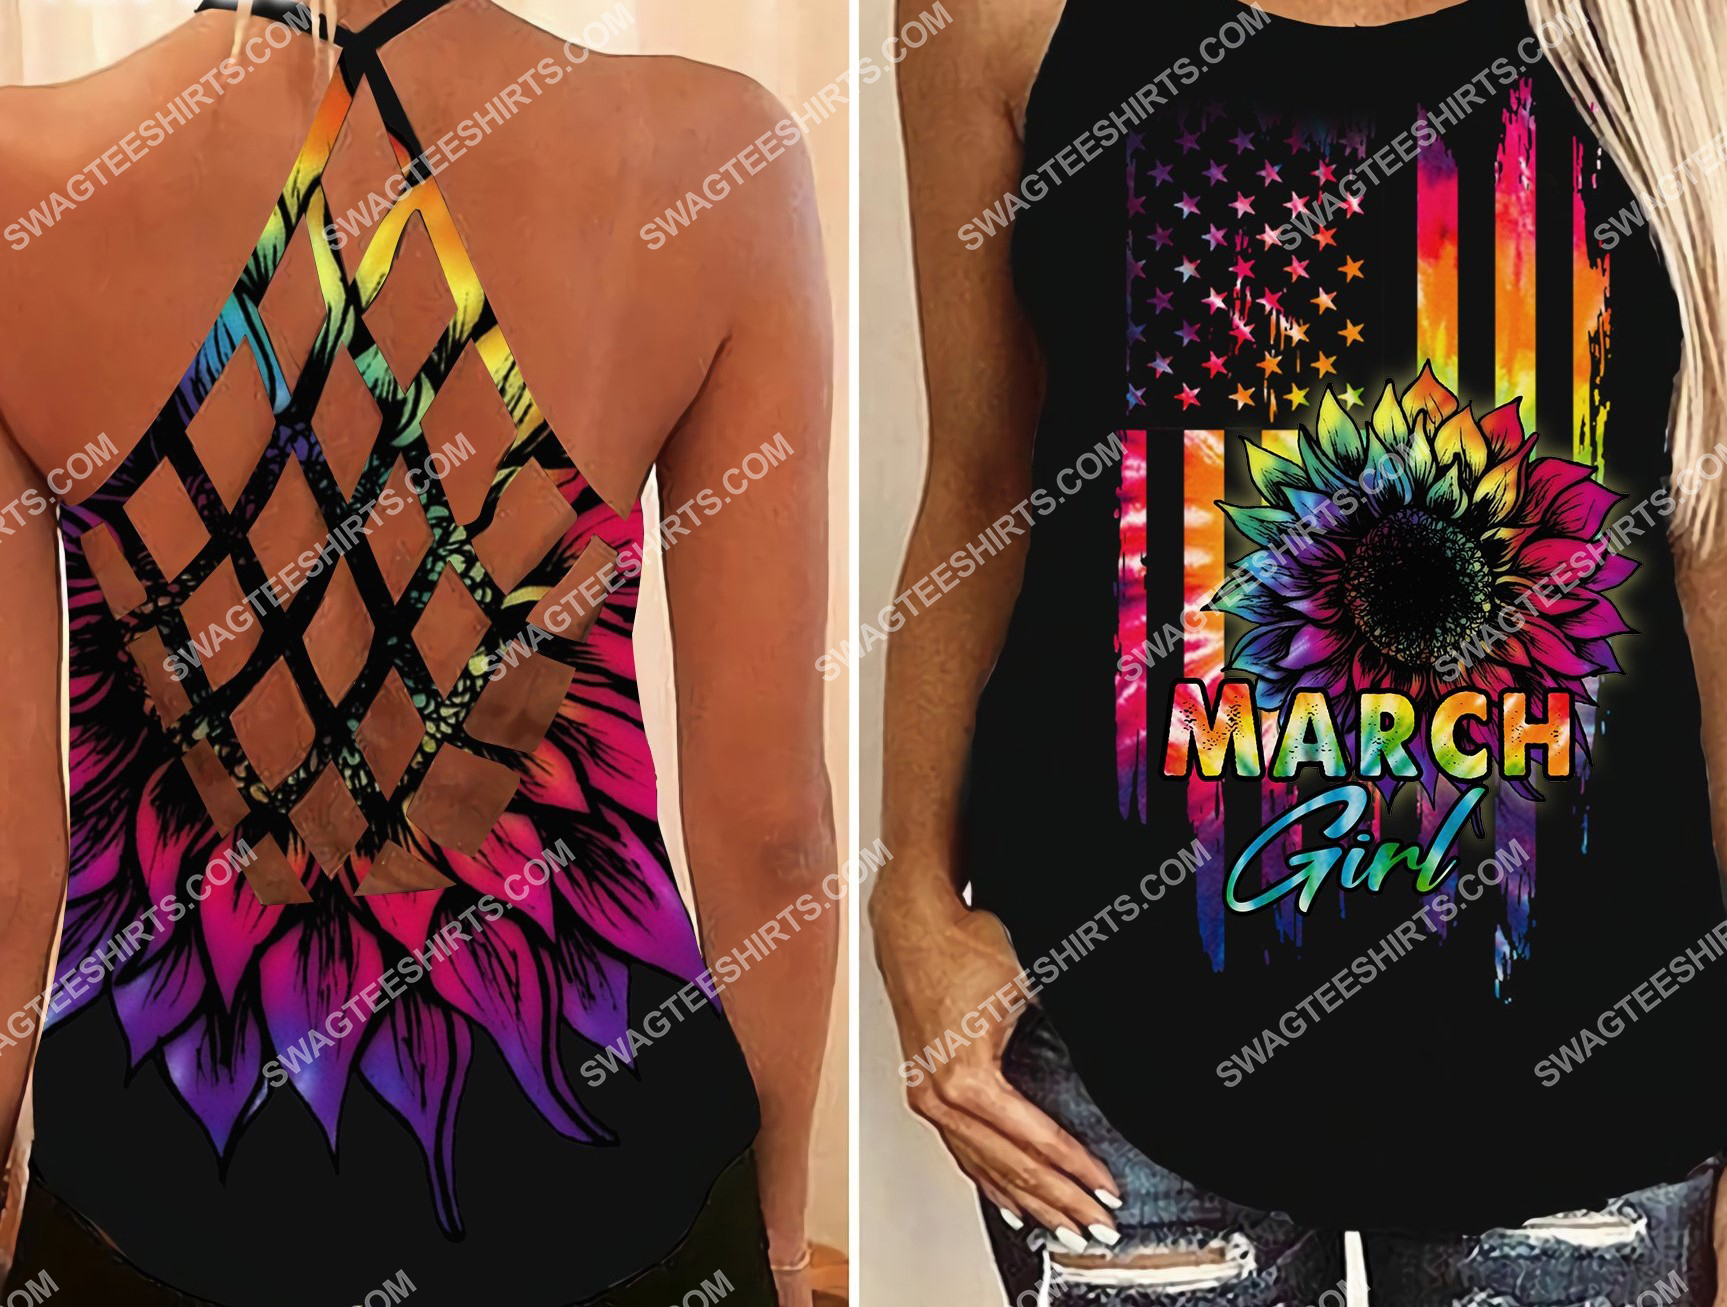 american flag march girl all over printed strappy back tank top 2